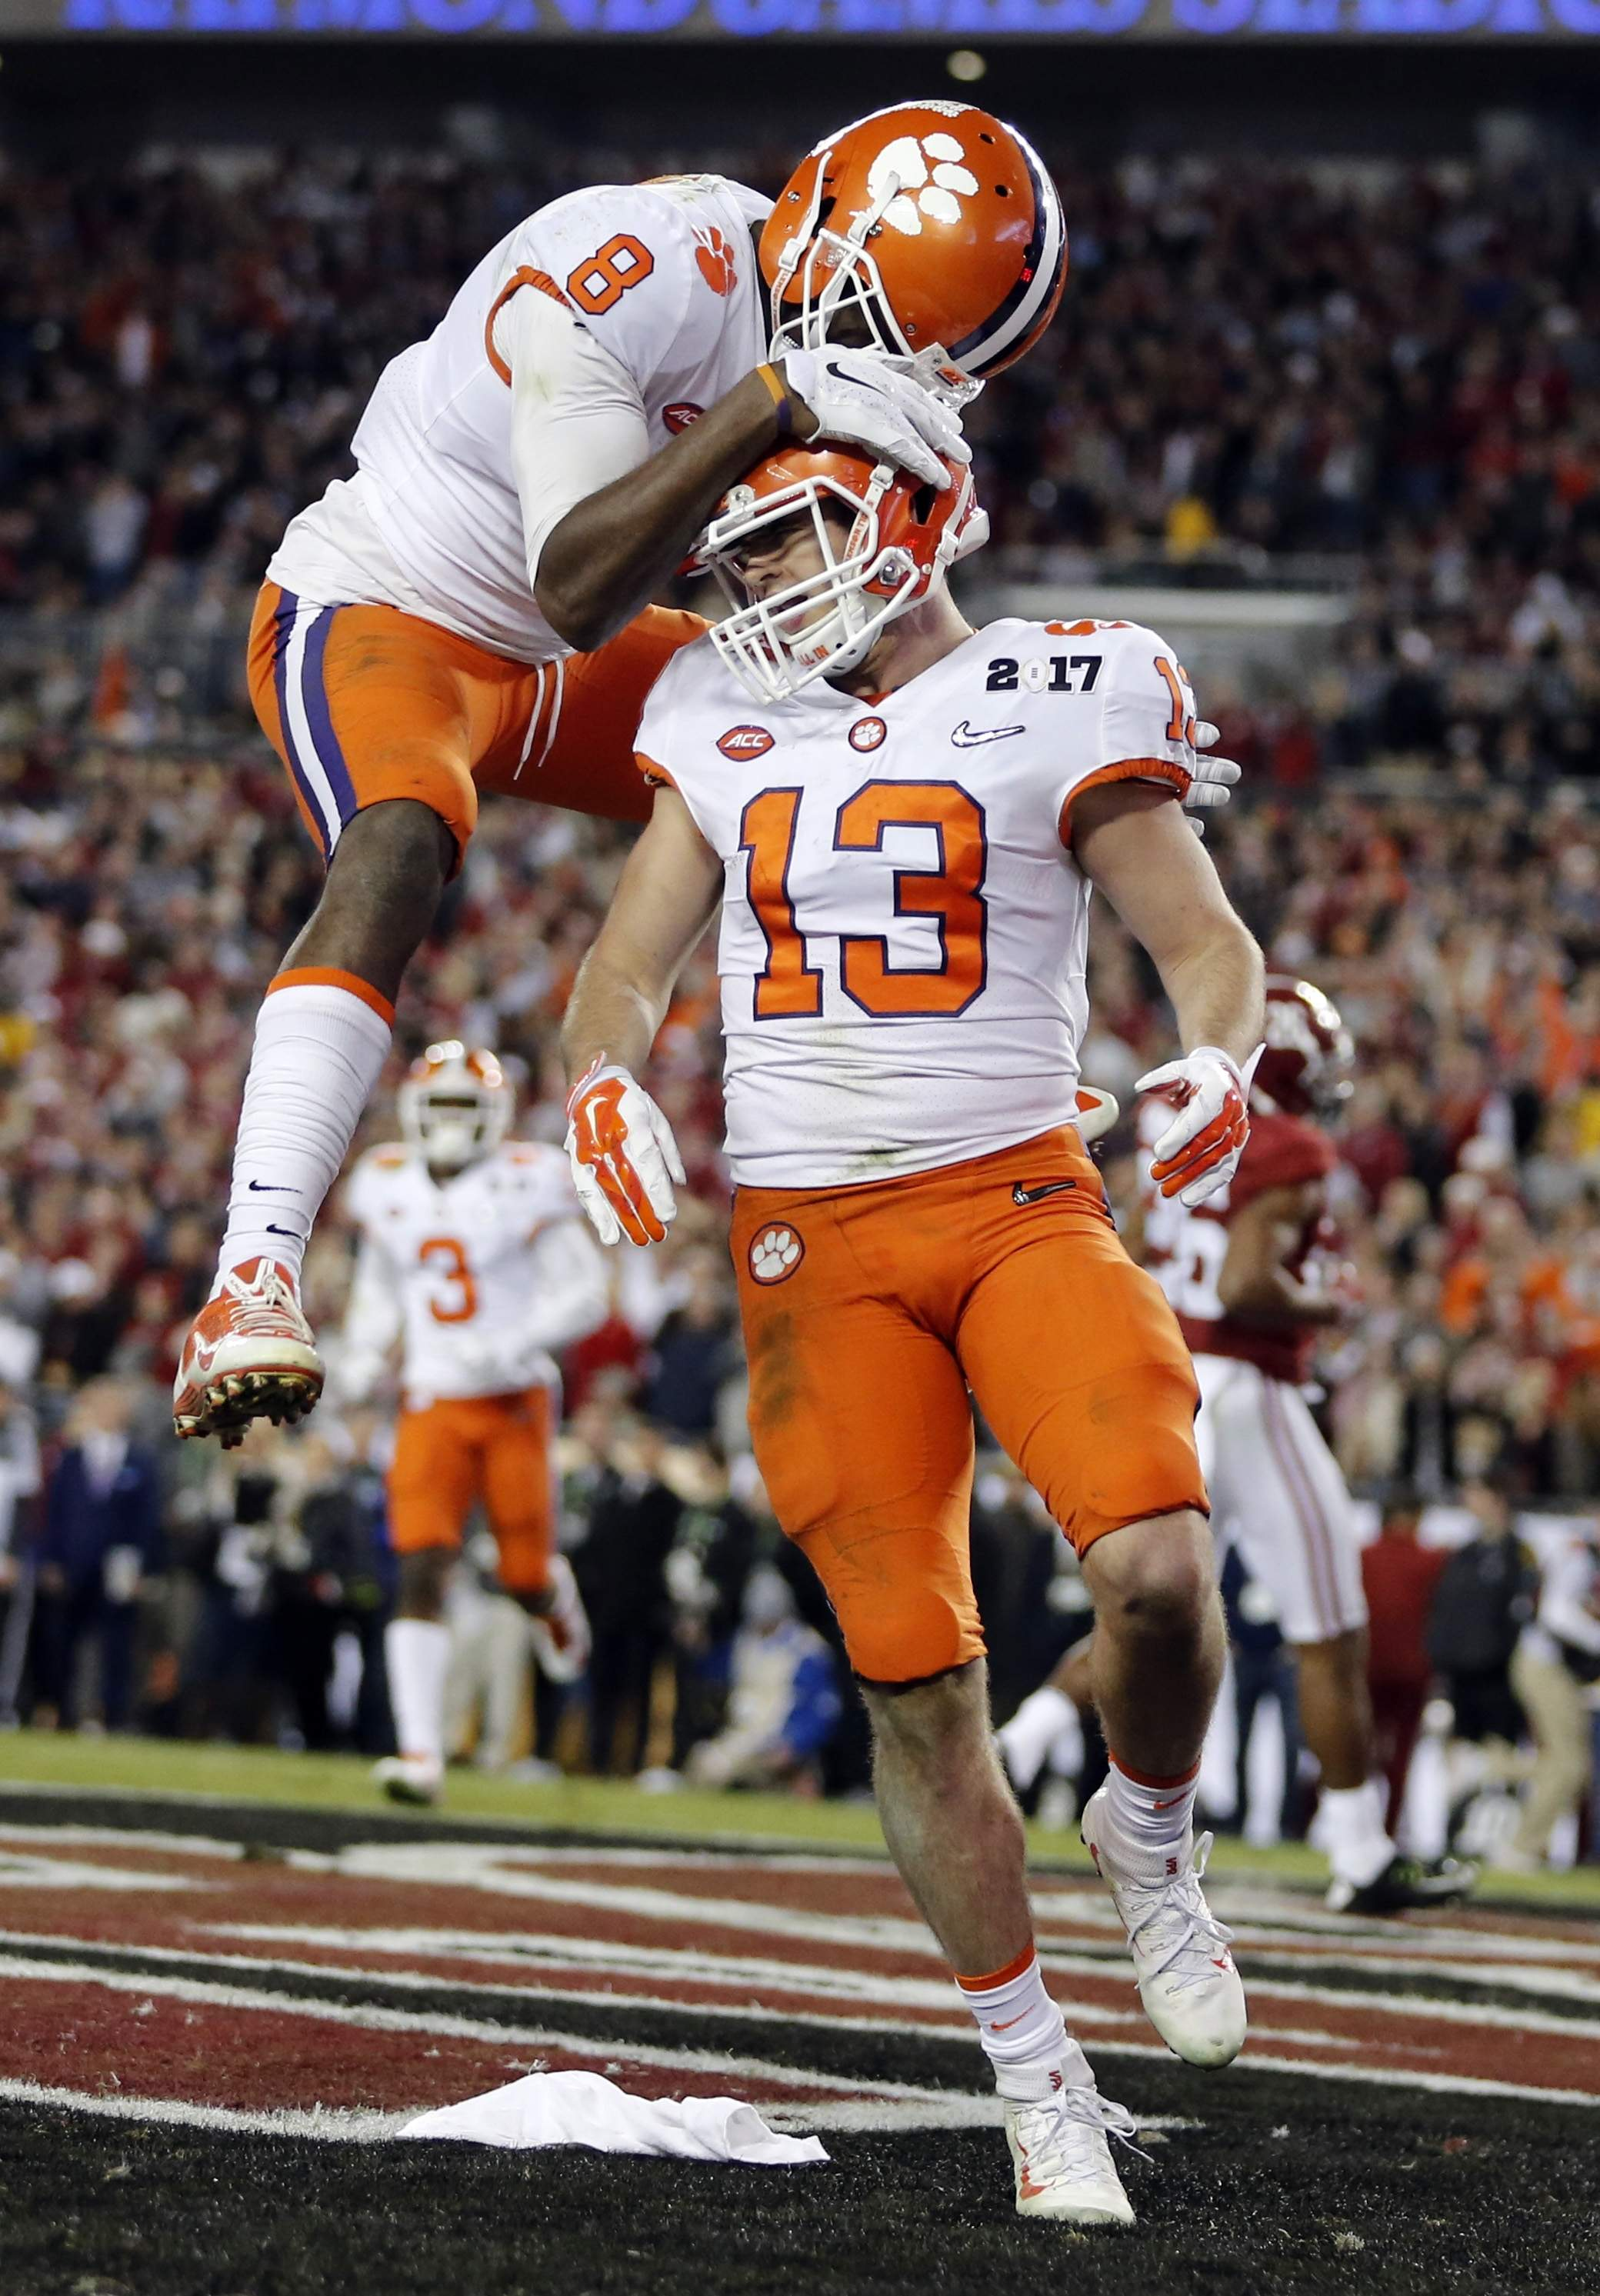 Clemson's Hunter Renfrow is congratulated by teammate Deon Cain after catching a touchdown pass during the second half of the NCAA college football playoff championship game against Alabama Monday, Jan. 9, 2017, in Tampa, Fla. THE ASSOCIATED PRESS